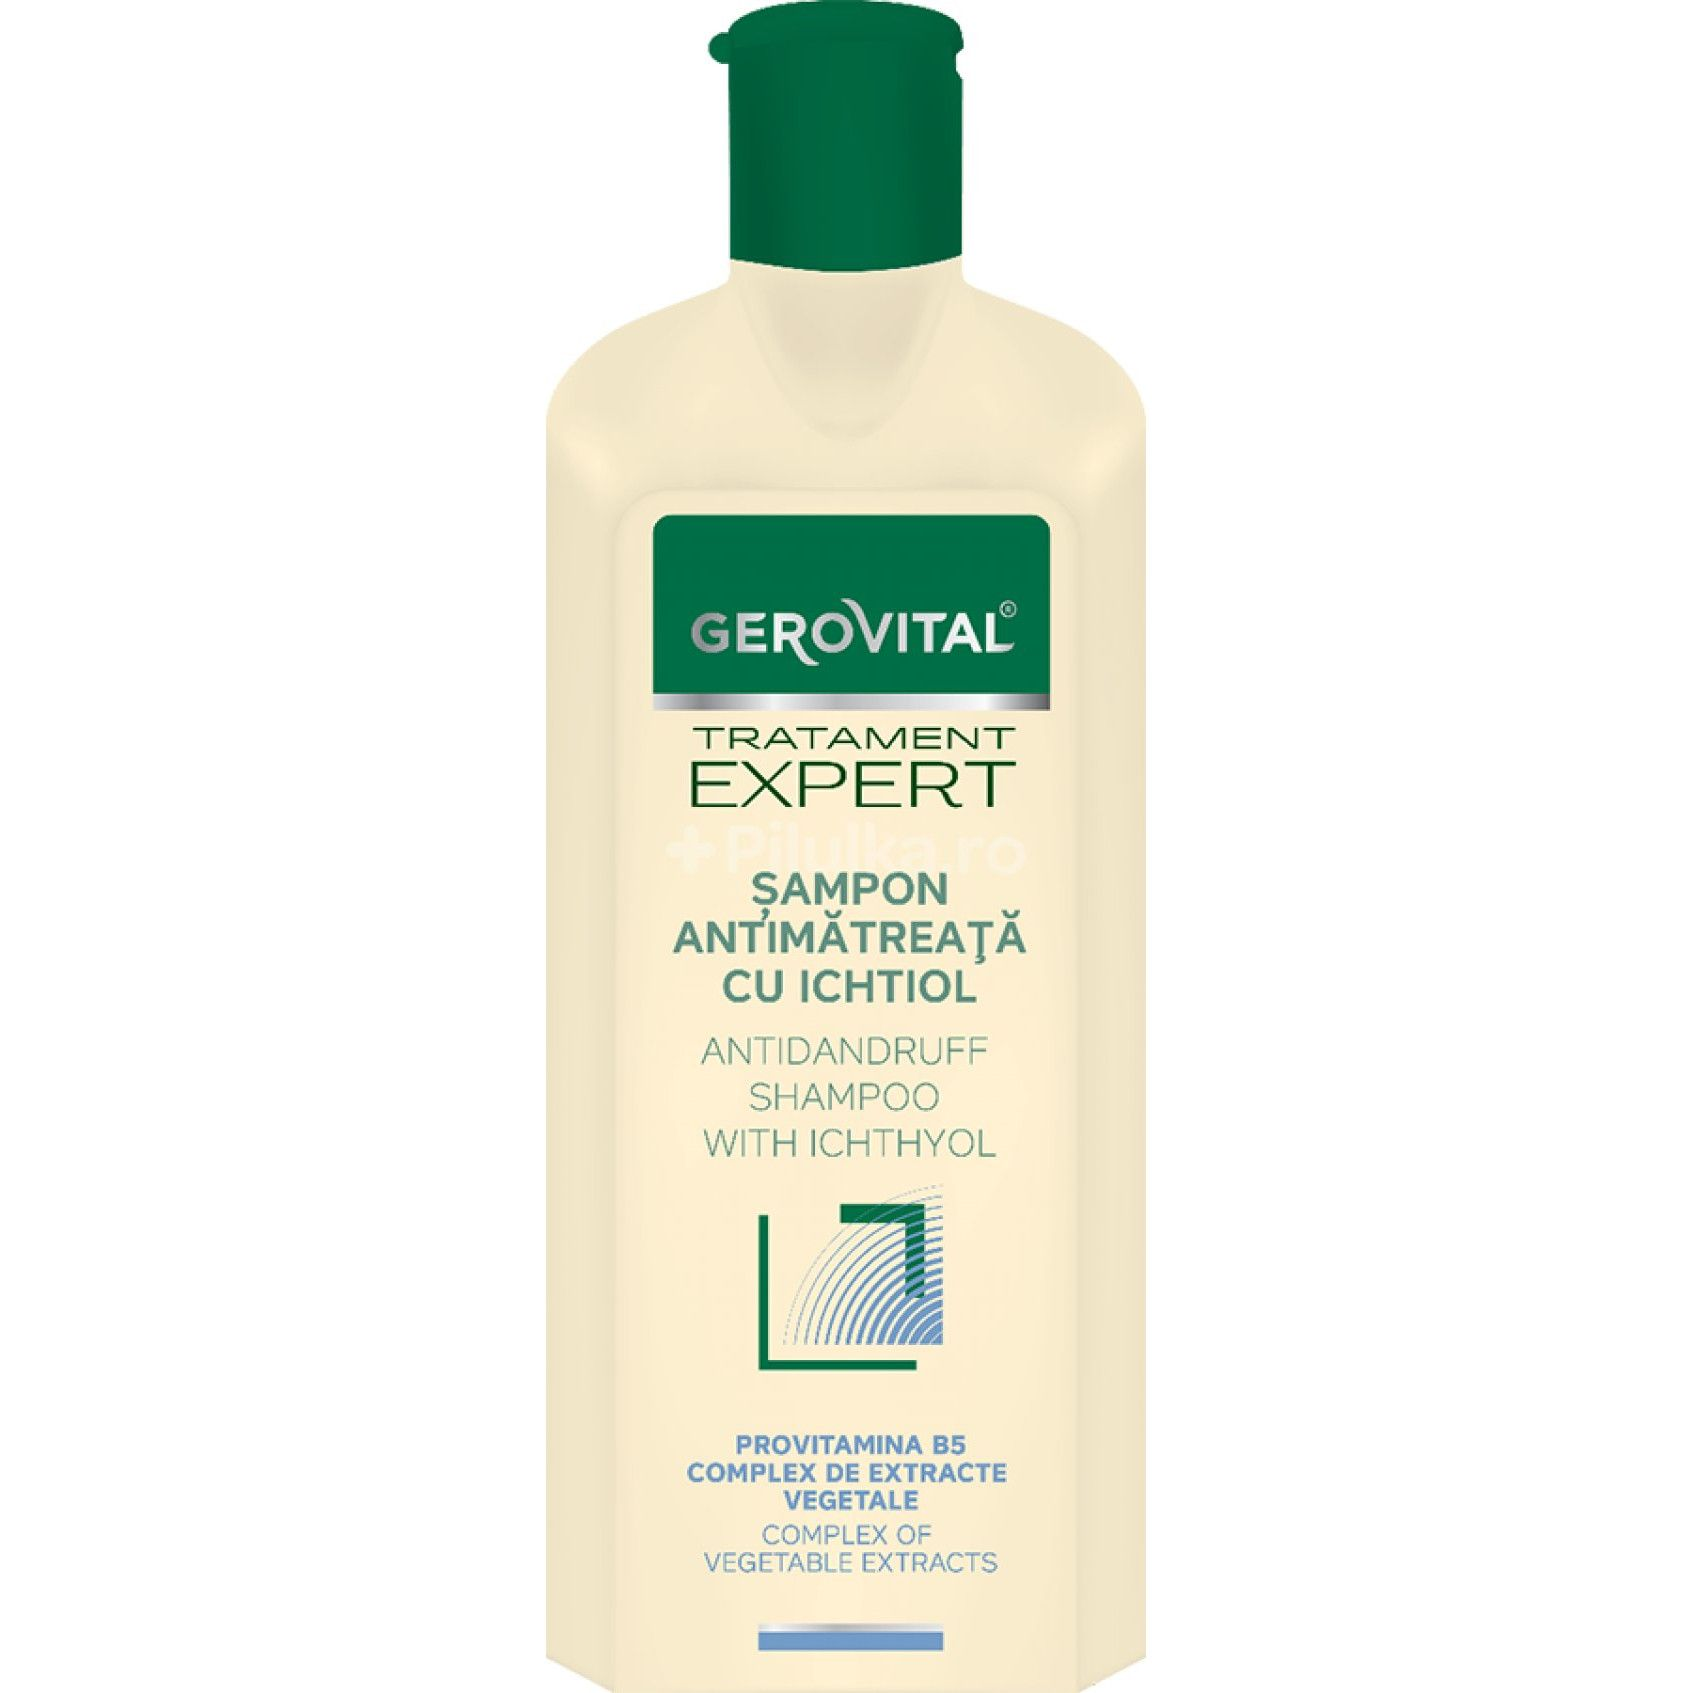 Sampon antimatreata cu ichtiol Tratament Expert, 250ml, Gerovital